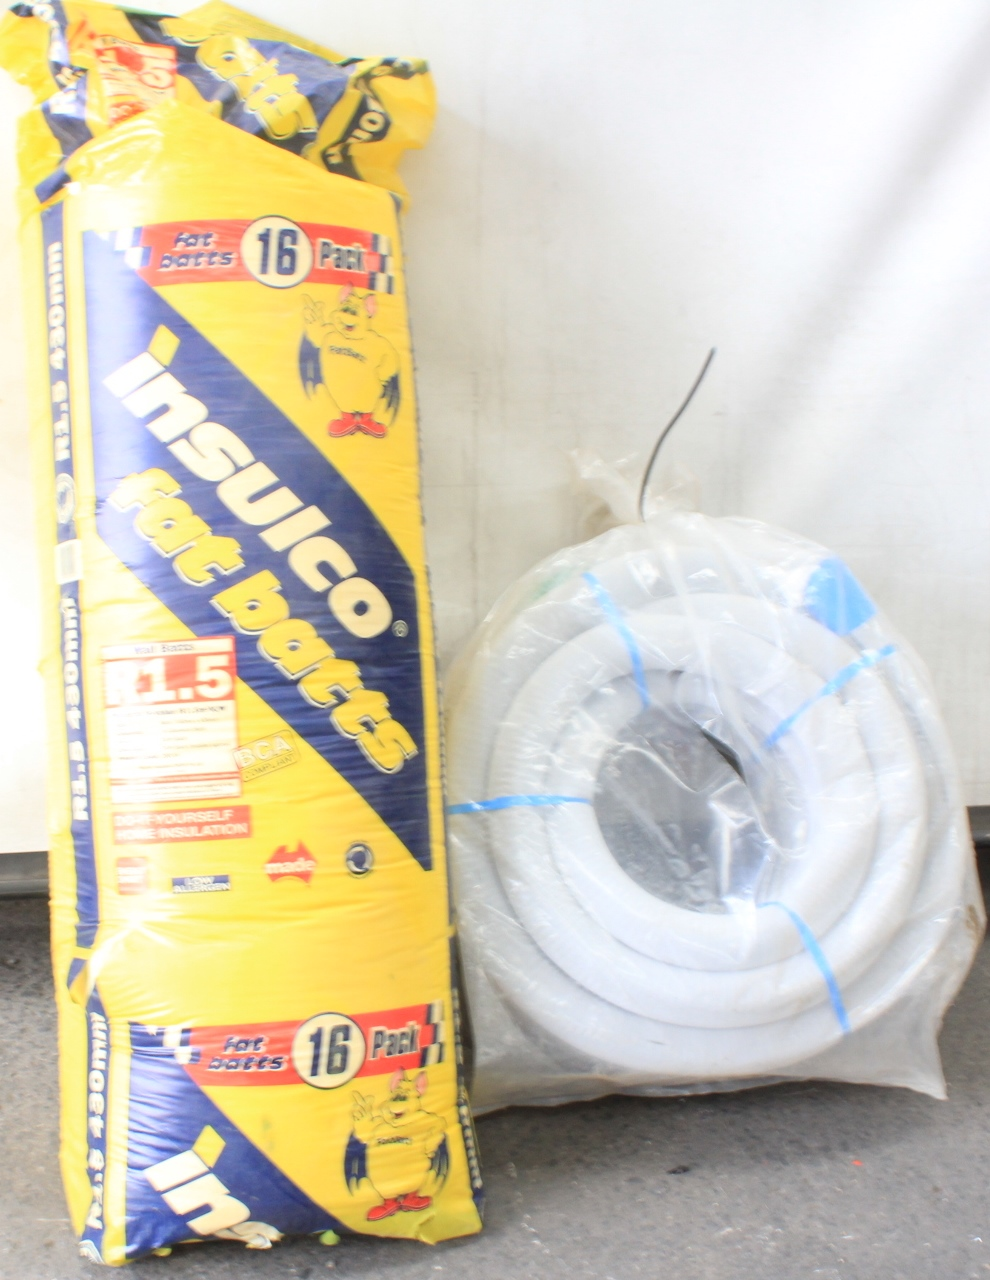 Insulco Fat Batts R1 5 Wall Insulation and Sub Soil Drainage Pipe